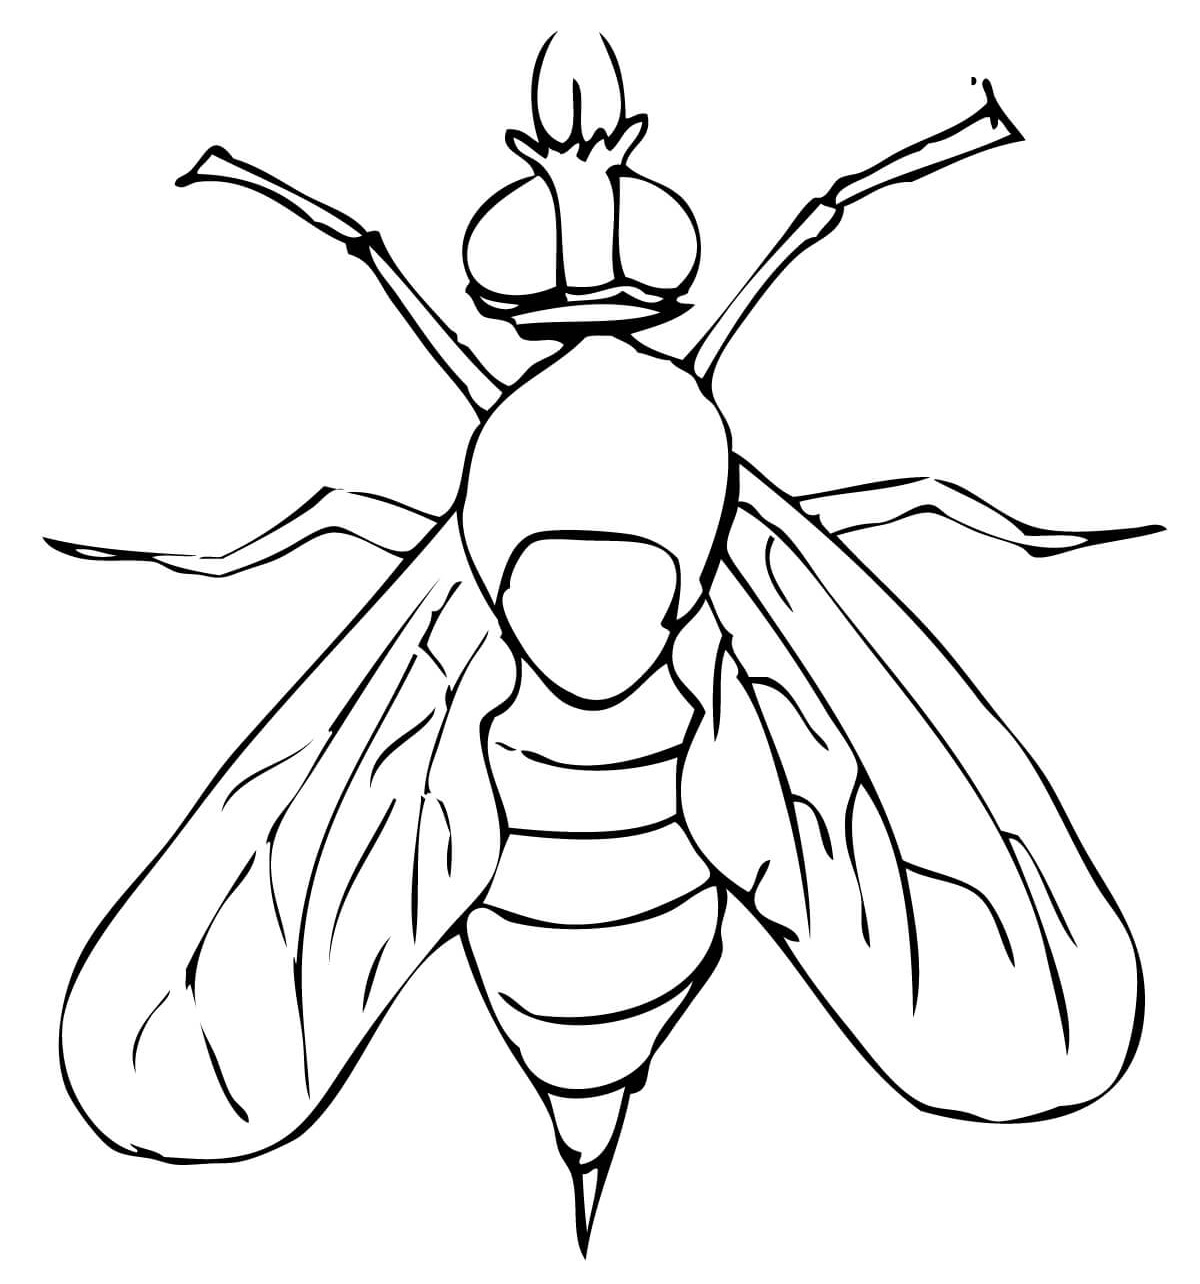 Fruit Fly Drawing At Getdrawings